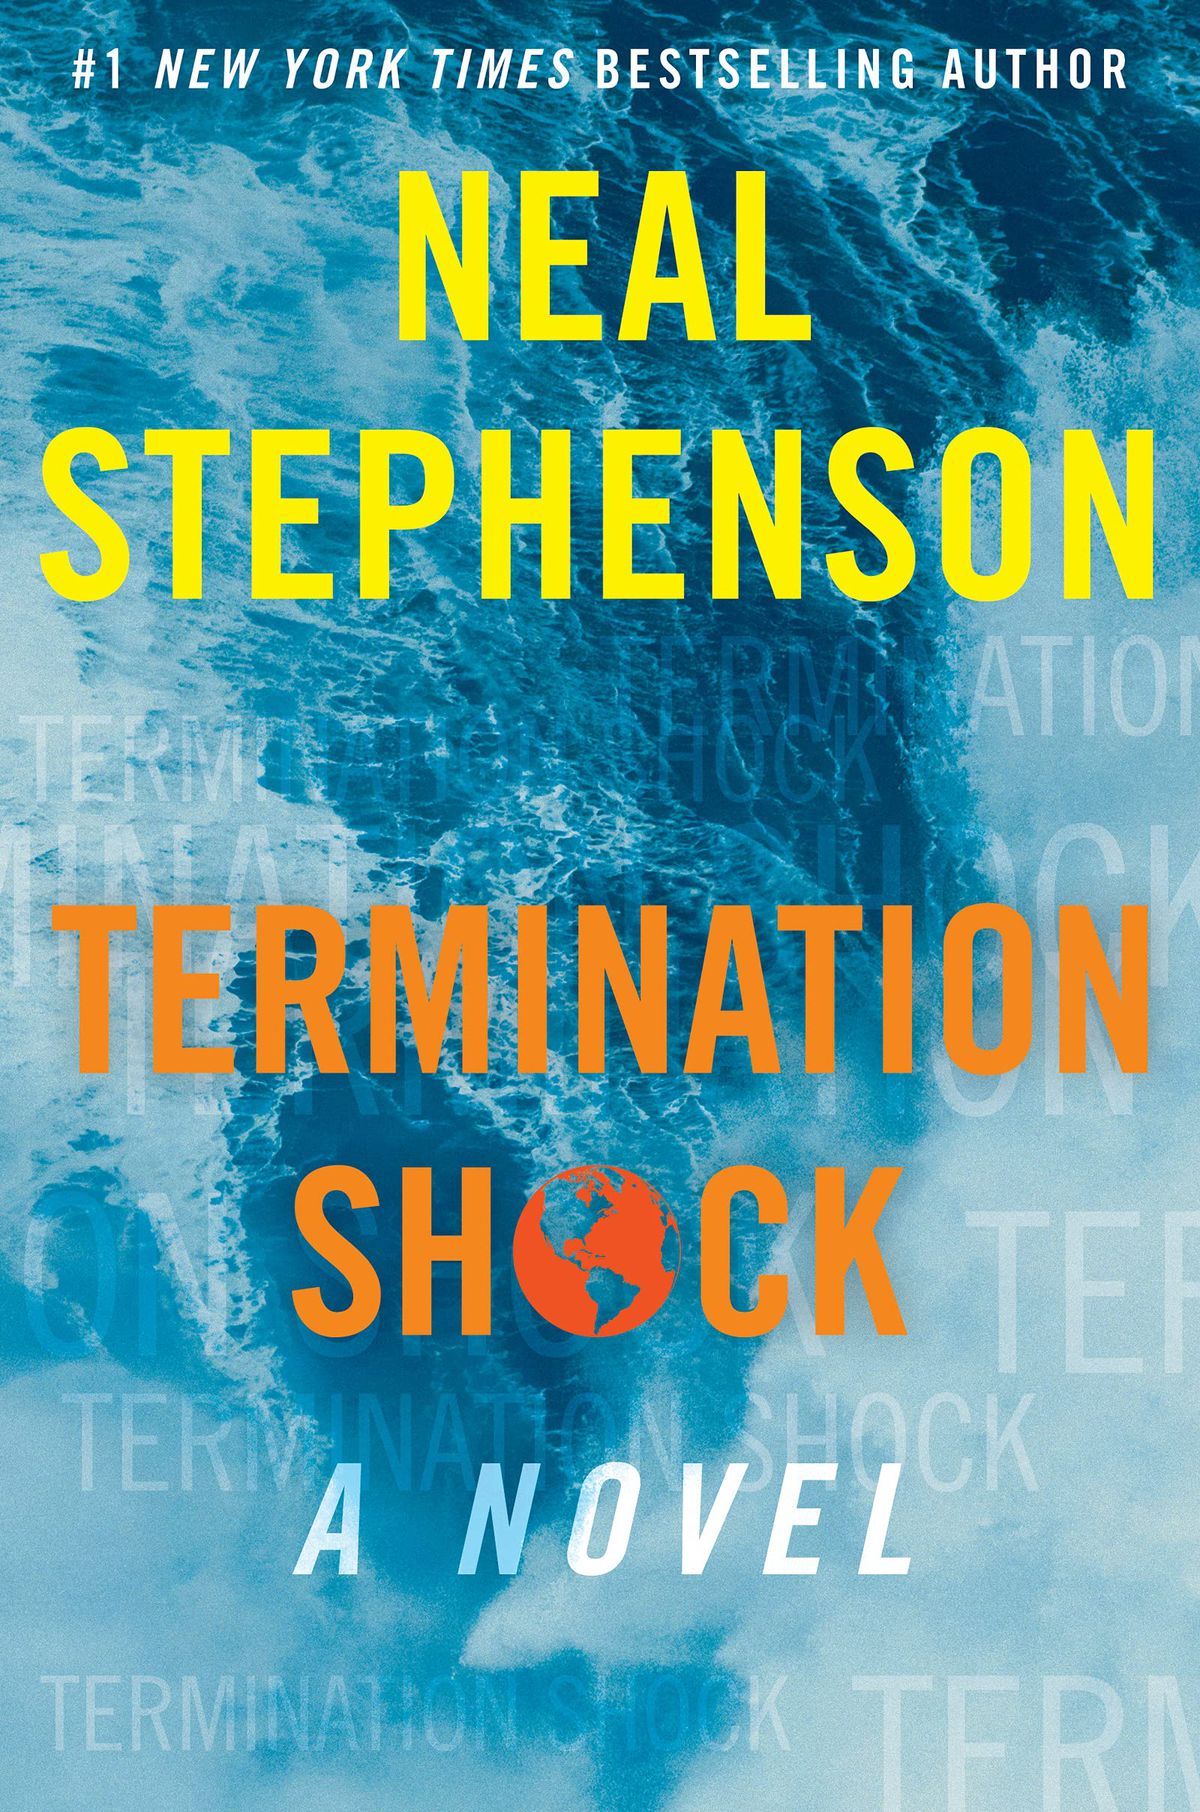 Termination Shock by Neal Stephenson book cover